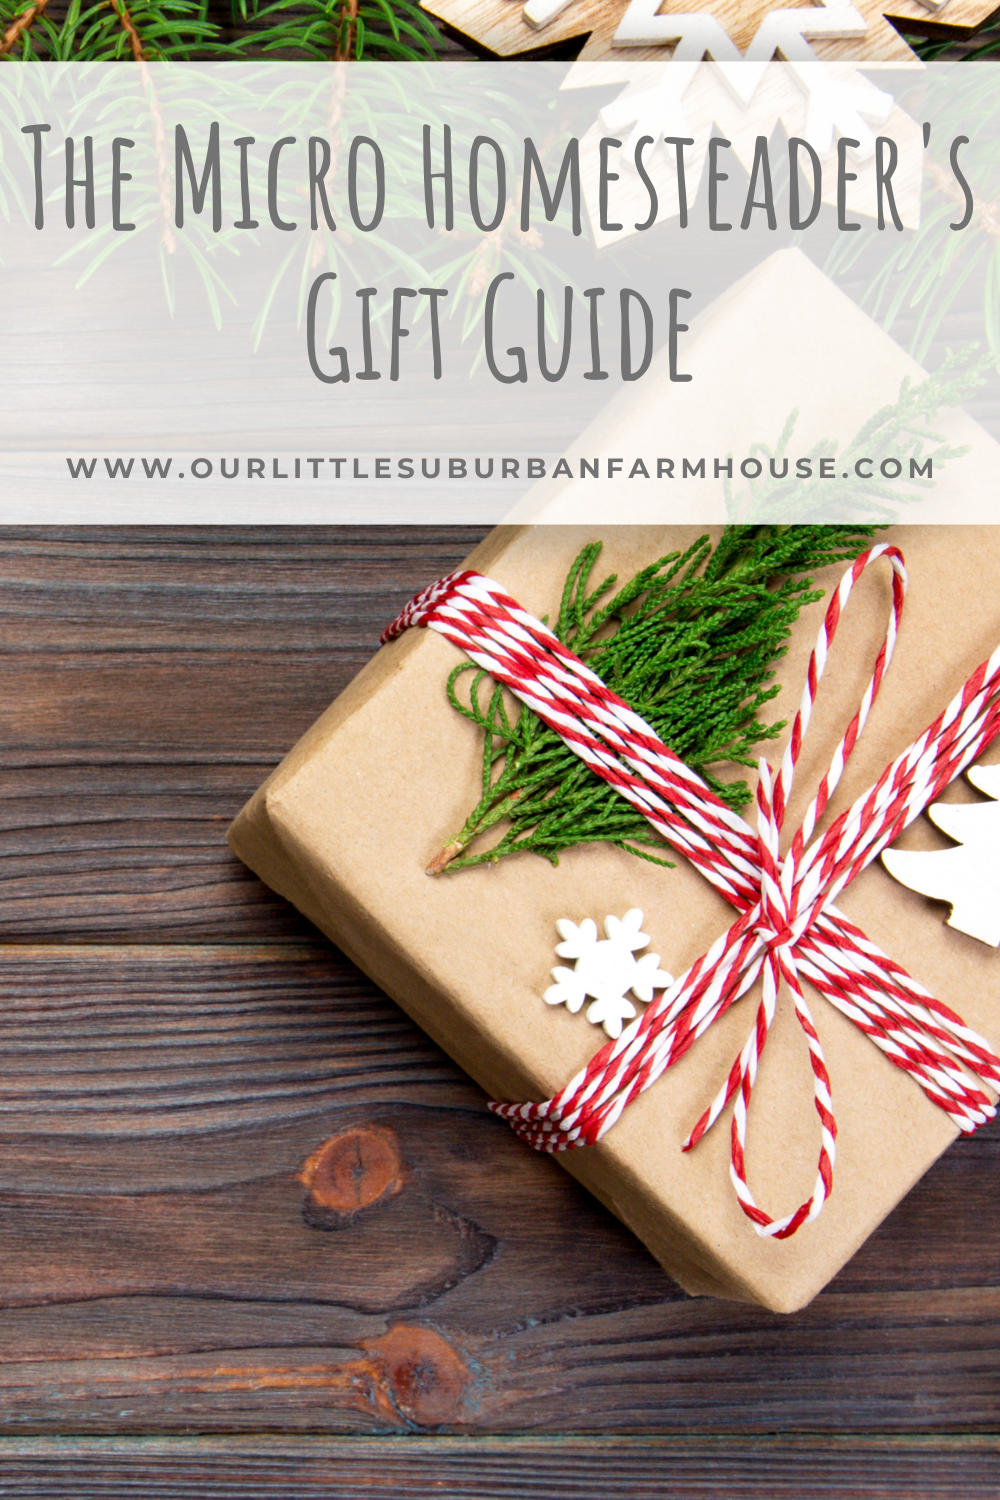 Micro Homesteader's Gift Guide